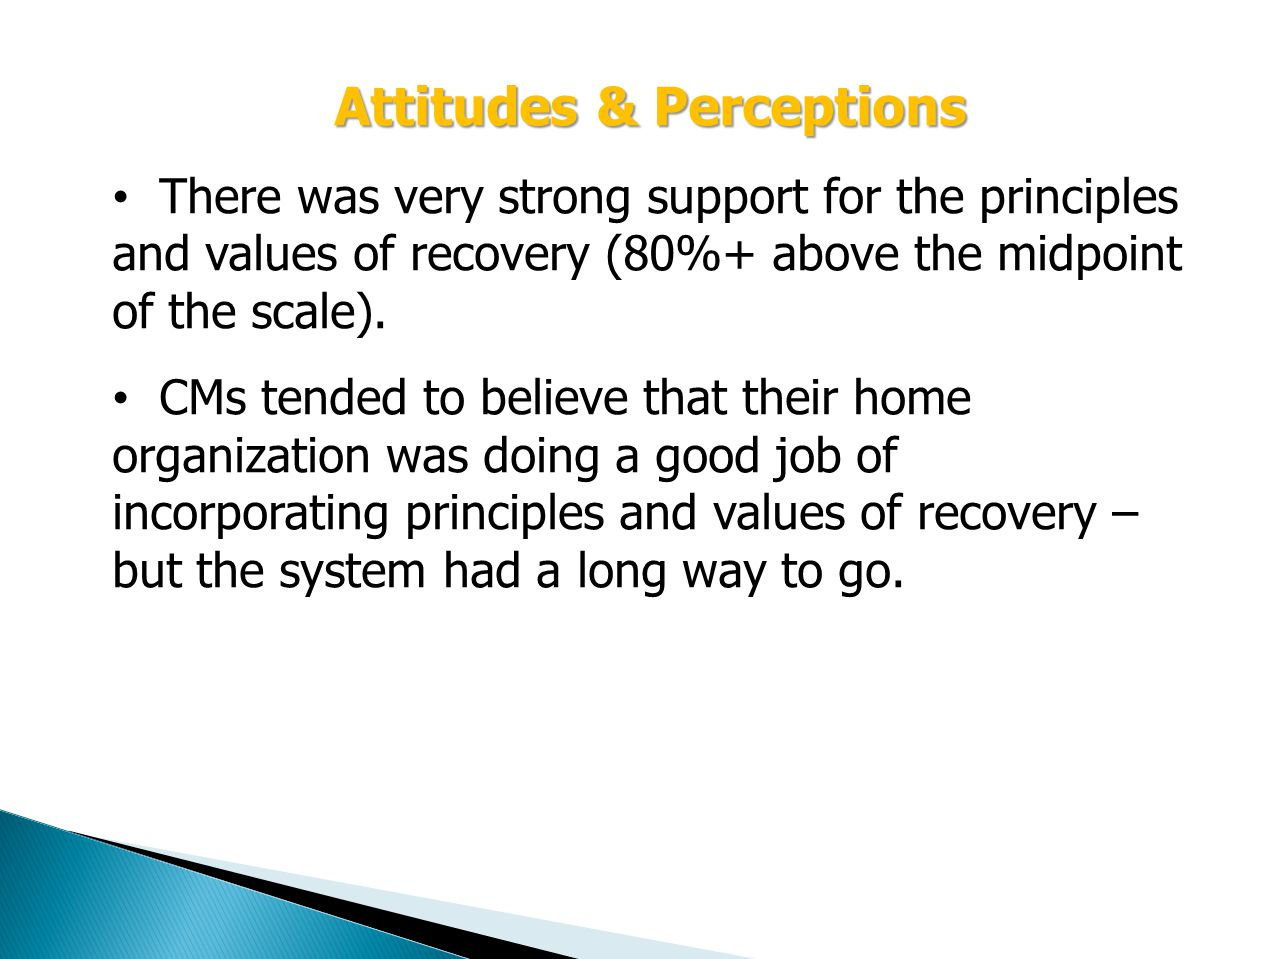 Attitudes & Perceptions There was very strong support for the principles and values of recovery (80%+ above the midpoint of the scale).